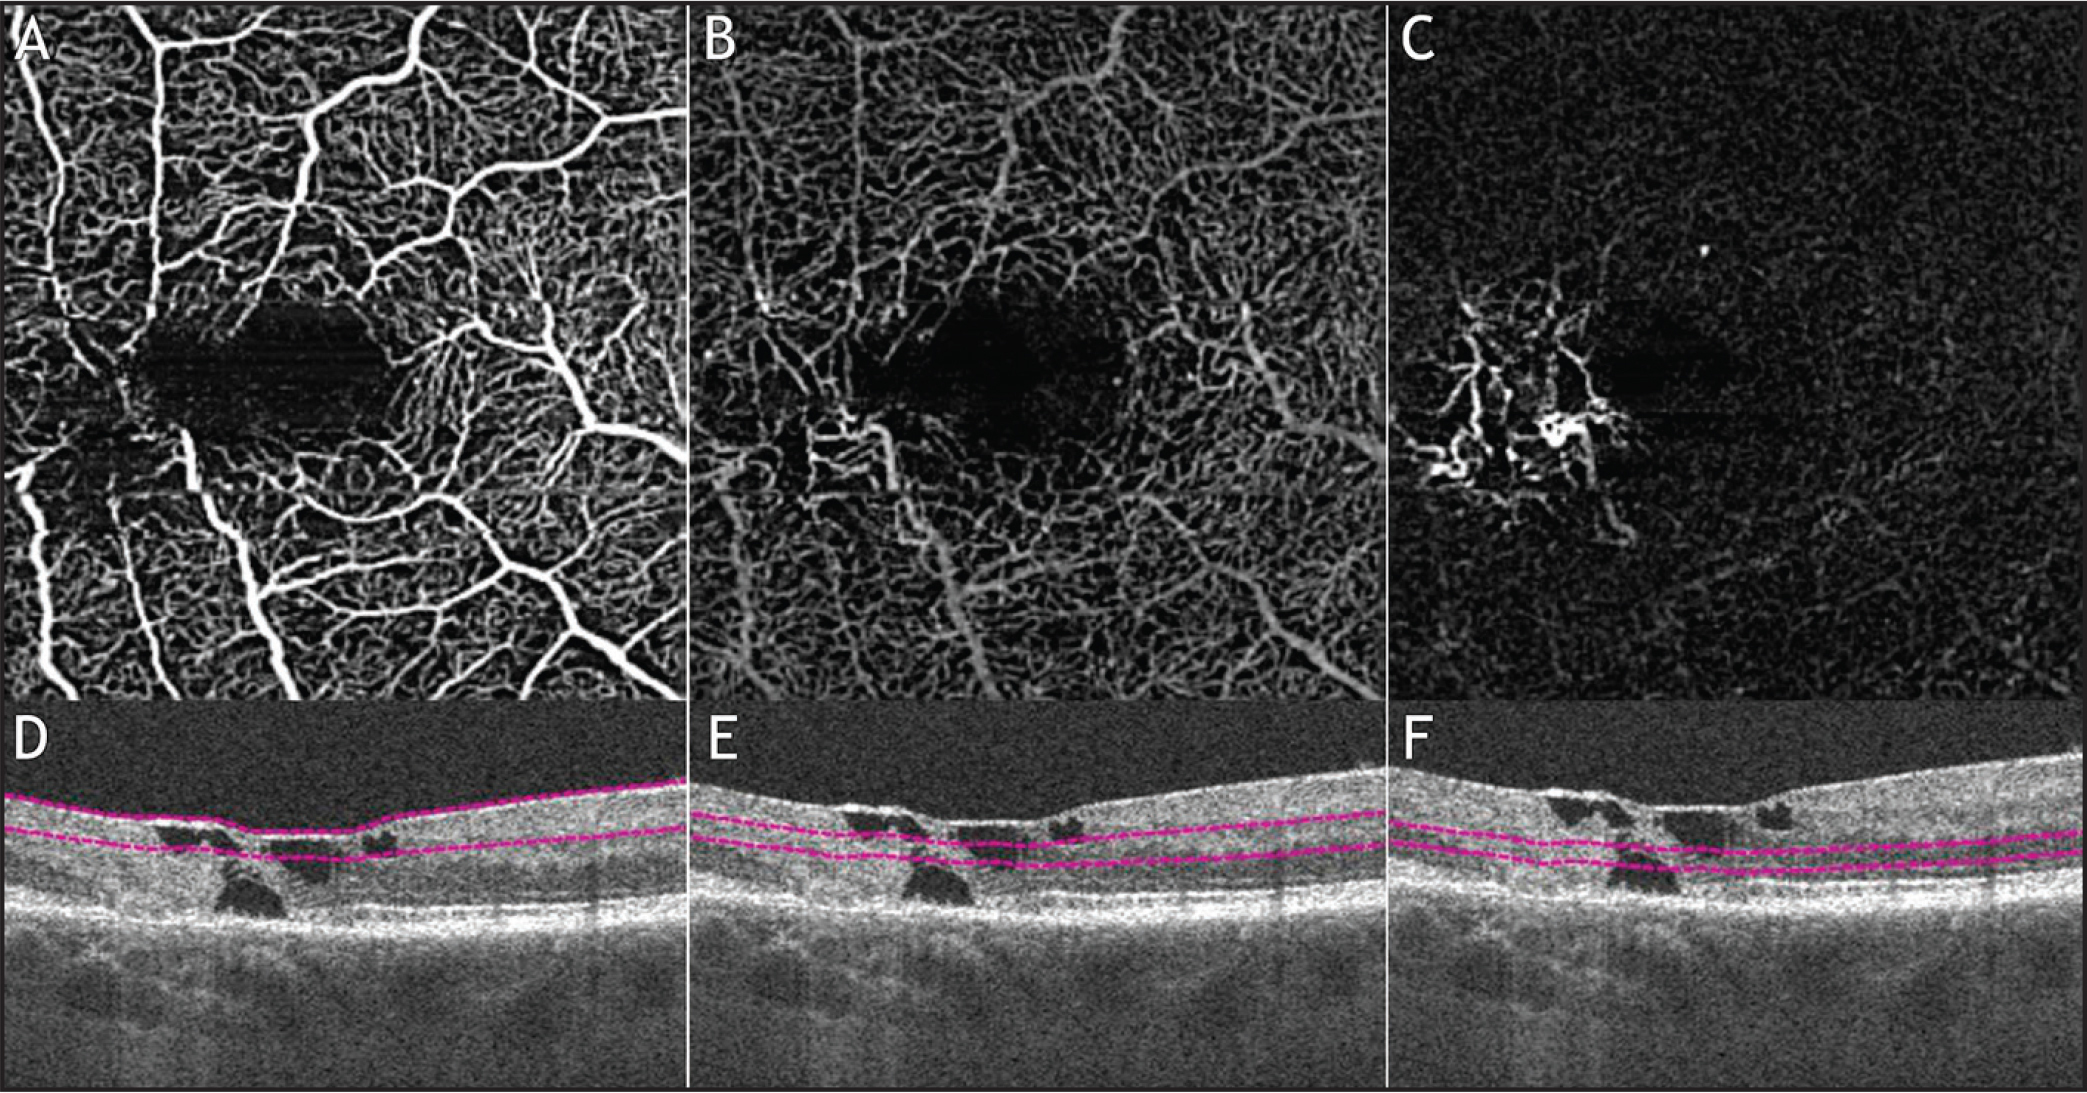 En face flow optical coherence tomography angiography (OCTA) (A–C) using a modified spectral-domain Cirrus OCT (Angioplex; Carl Zeiss Meditec, Dublin, CA) of the superficial, deeper plexus, and avascular retina layers, with respective B-scans (D–F) of the same eye showed on Figure 5. On the B-scans, it is possible to see intraretinal cavities and outer retina loss, characteristic of macular telangiectasia type 2. (A) Superficial en face flow OCTA image showing the presence of microvascular abnormalities in the juxtafoveal region. (B) Deeper plexus en face flow OCTA image showing the telangiectatic and dilated vessels in the middle retinal layers. (C) Avascular retina en face flow OCTA image detecting with details the anastomotic telangiectatic dilated vessels. (D–F) representative B-scans showing the boundaries (red lines) of the slabs that created the en face flow image showed in A–C.